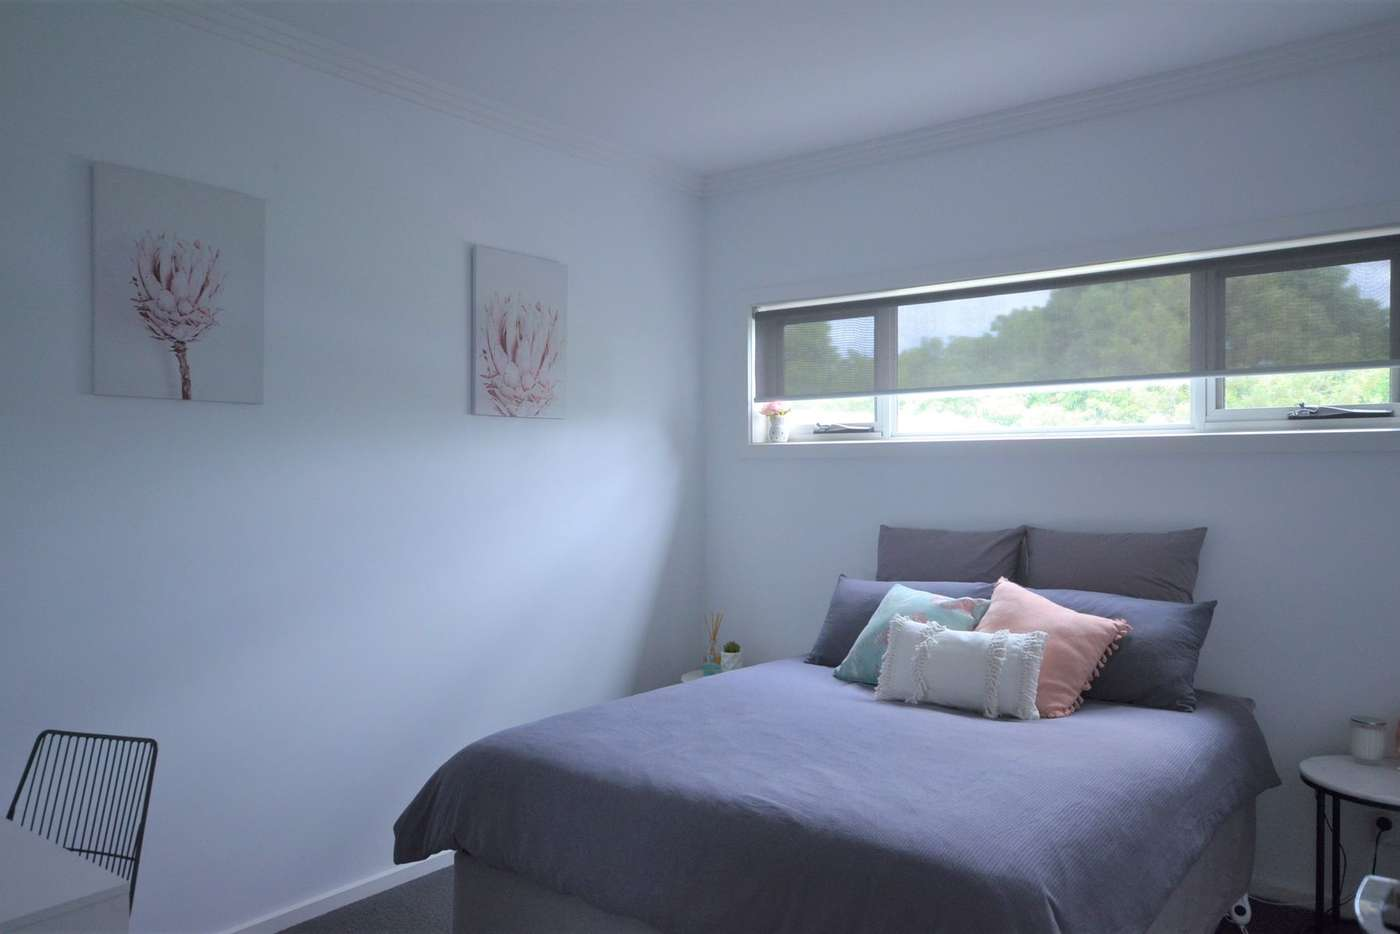 Sixth view of Homely house listing, 12A Michael Street, Kennington VIC 3550